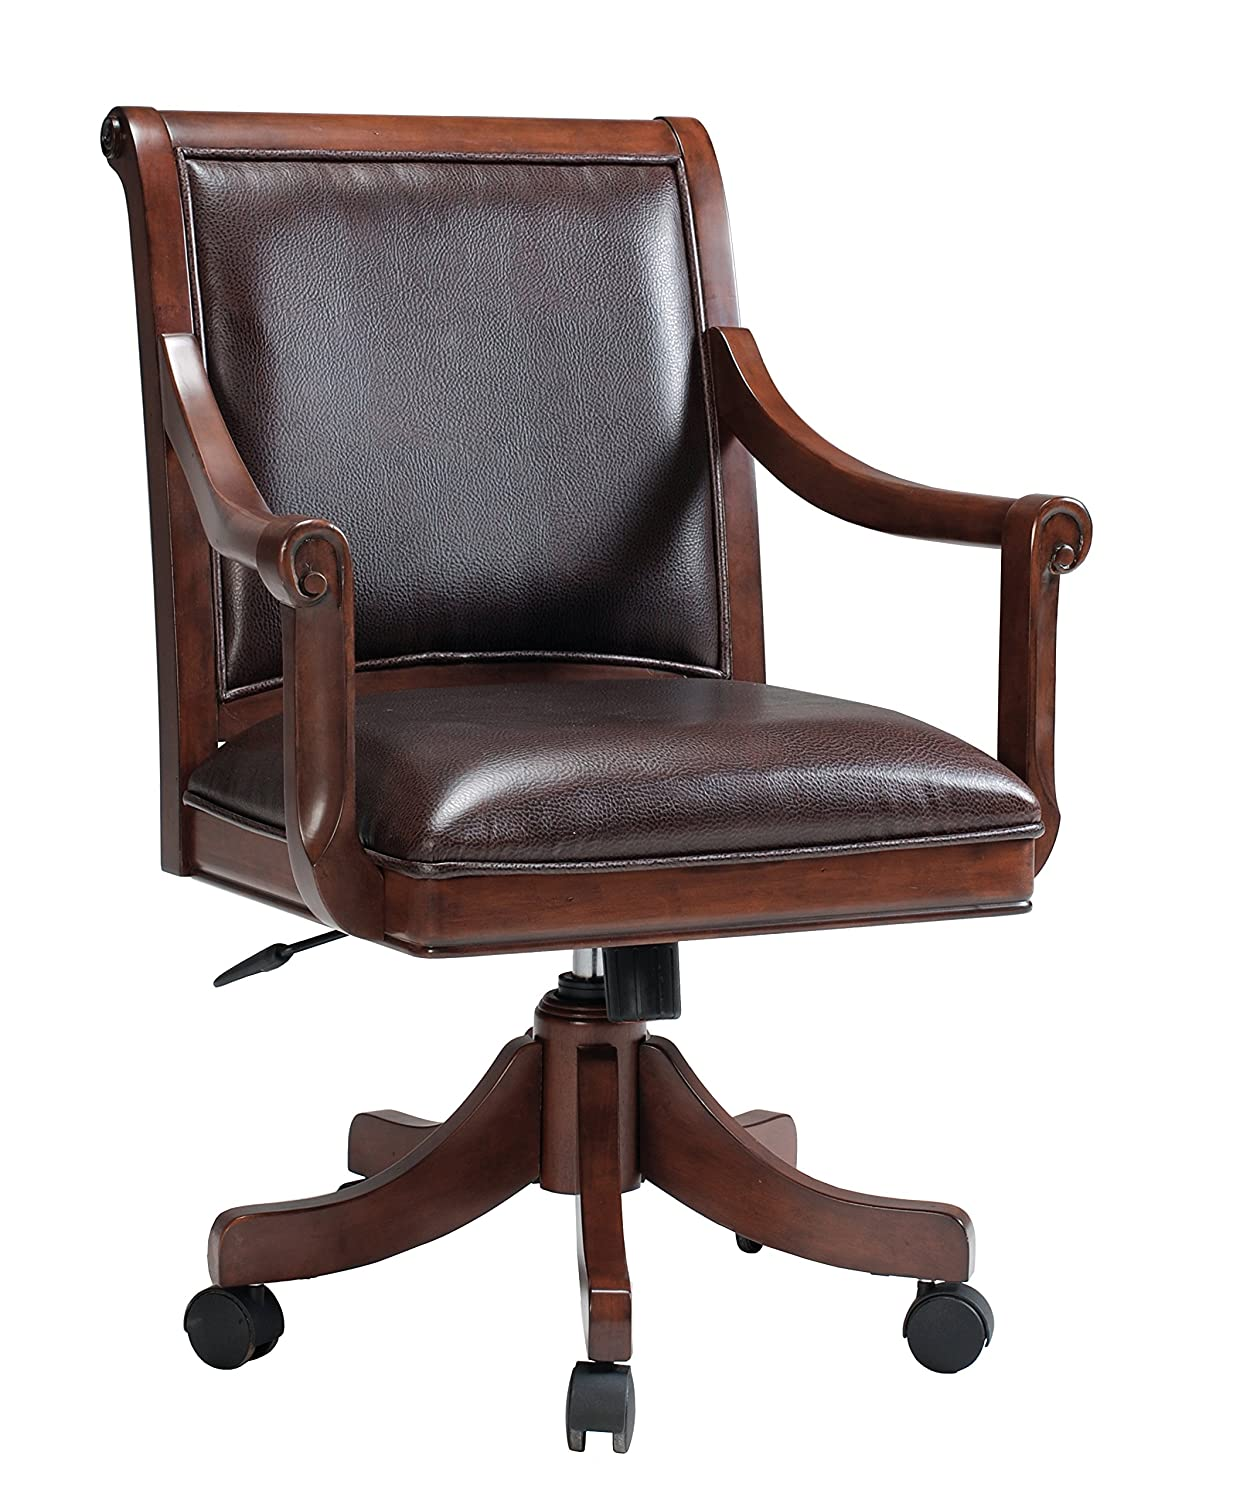 Hillsdale Palm Springs Caster Chair. Medium Brown Cherry